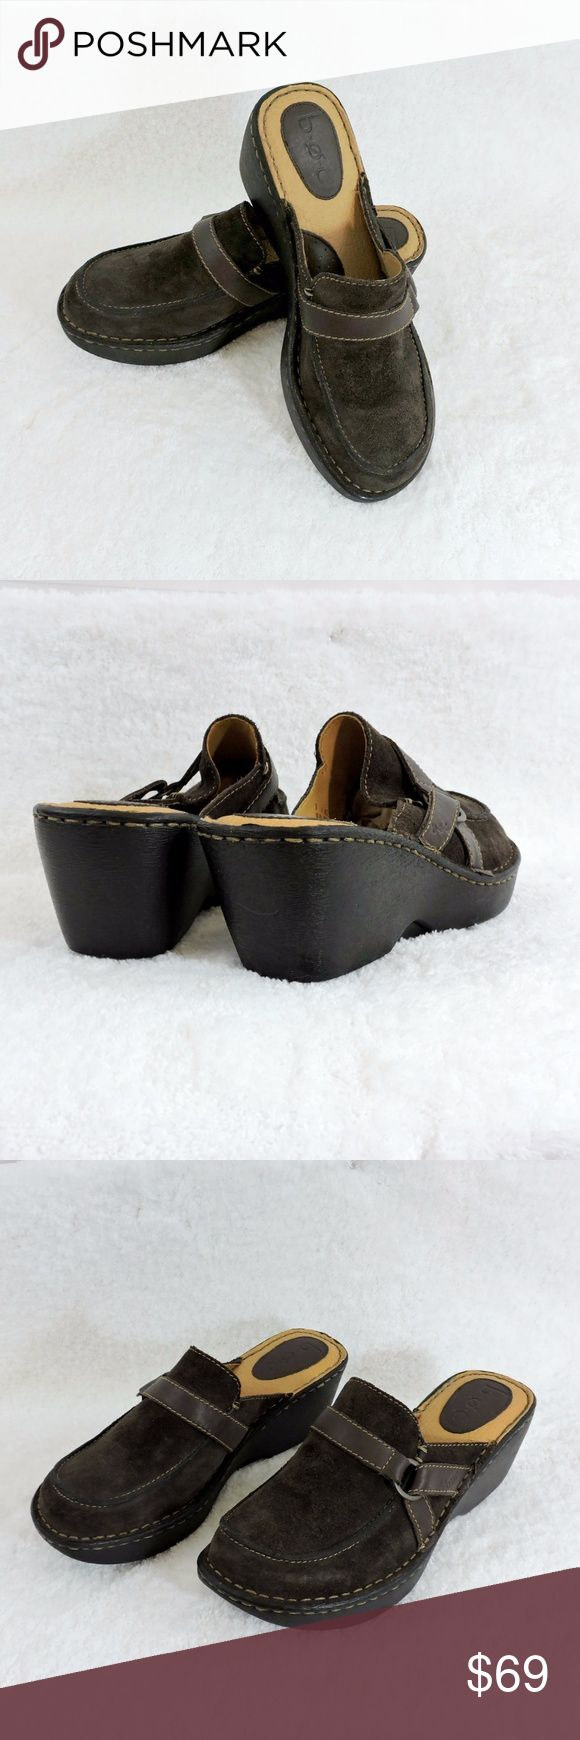 """NEW LISTING! BOC BORN Suede Slip-on Clogs. SZ 9 A combination of genuine leather and buckle accents define this essential slip-on clog.  Best worn with your favorite pair of jeans, these very cool BORN clogs are ready for a day of casual comfort and style. Heel height: 2"""" Size: 9 Condition: Flawless, NWOT Born Shoes"""